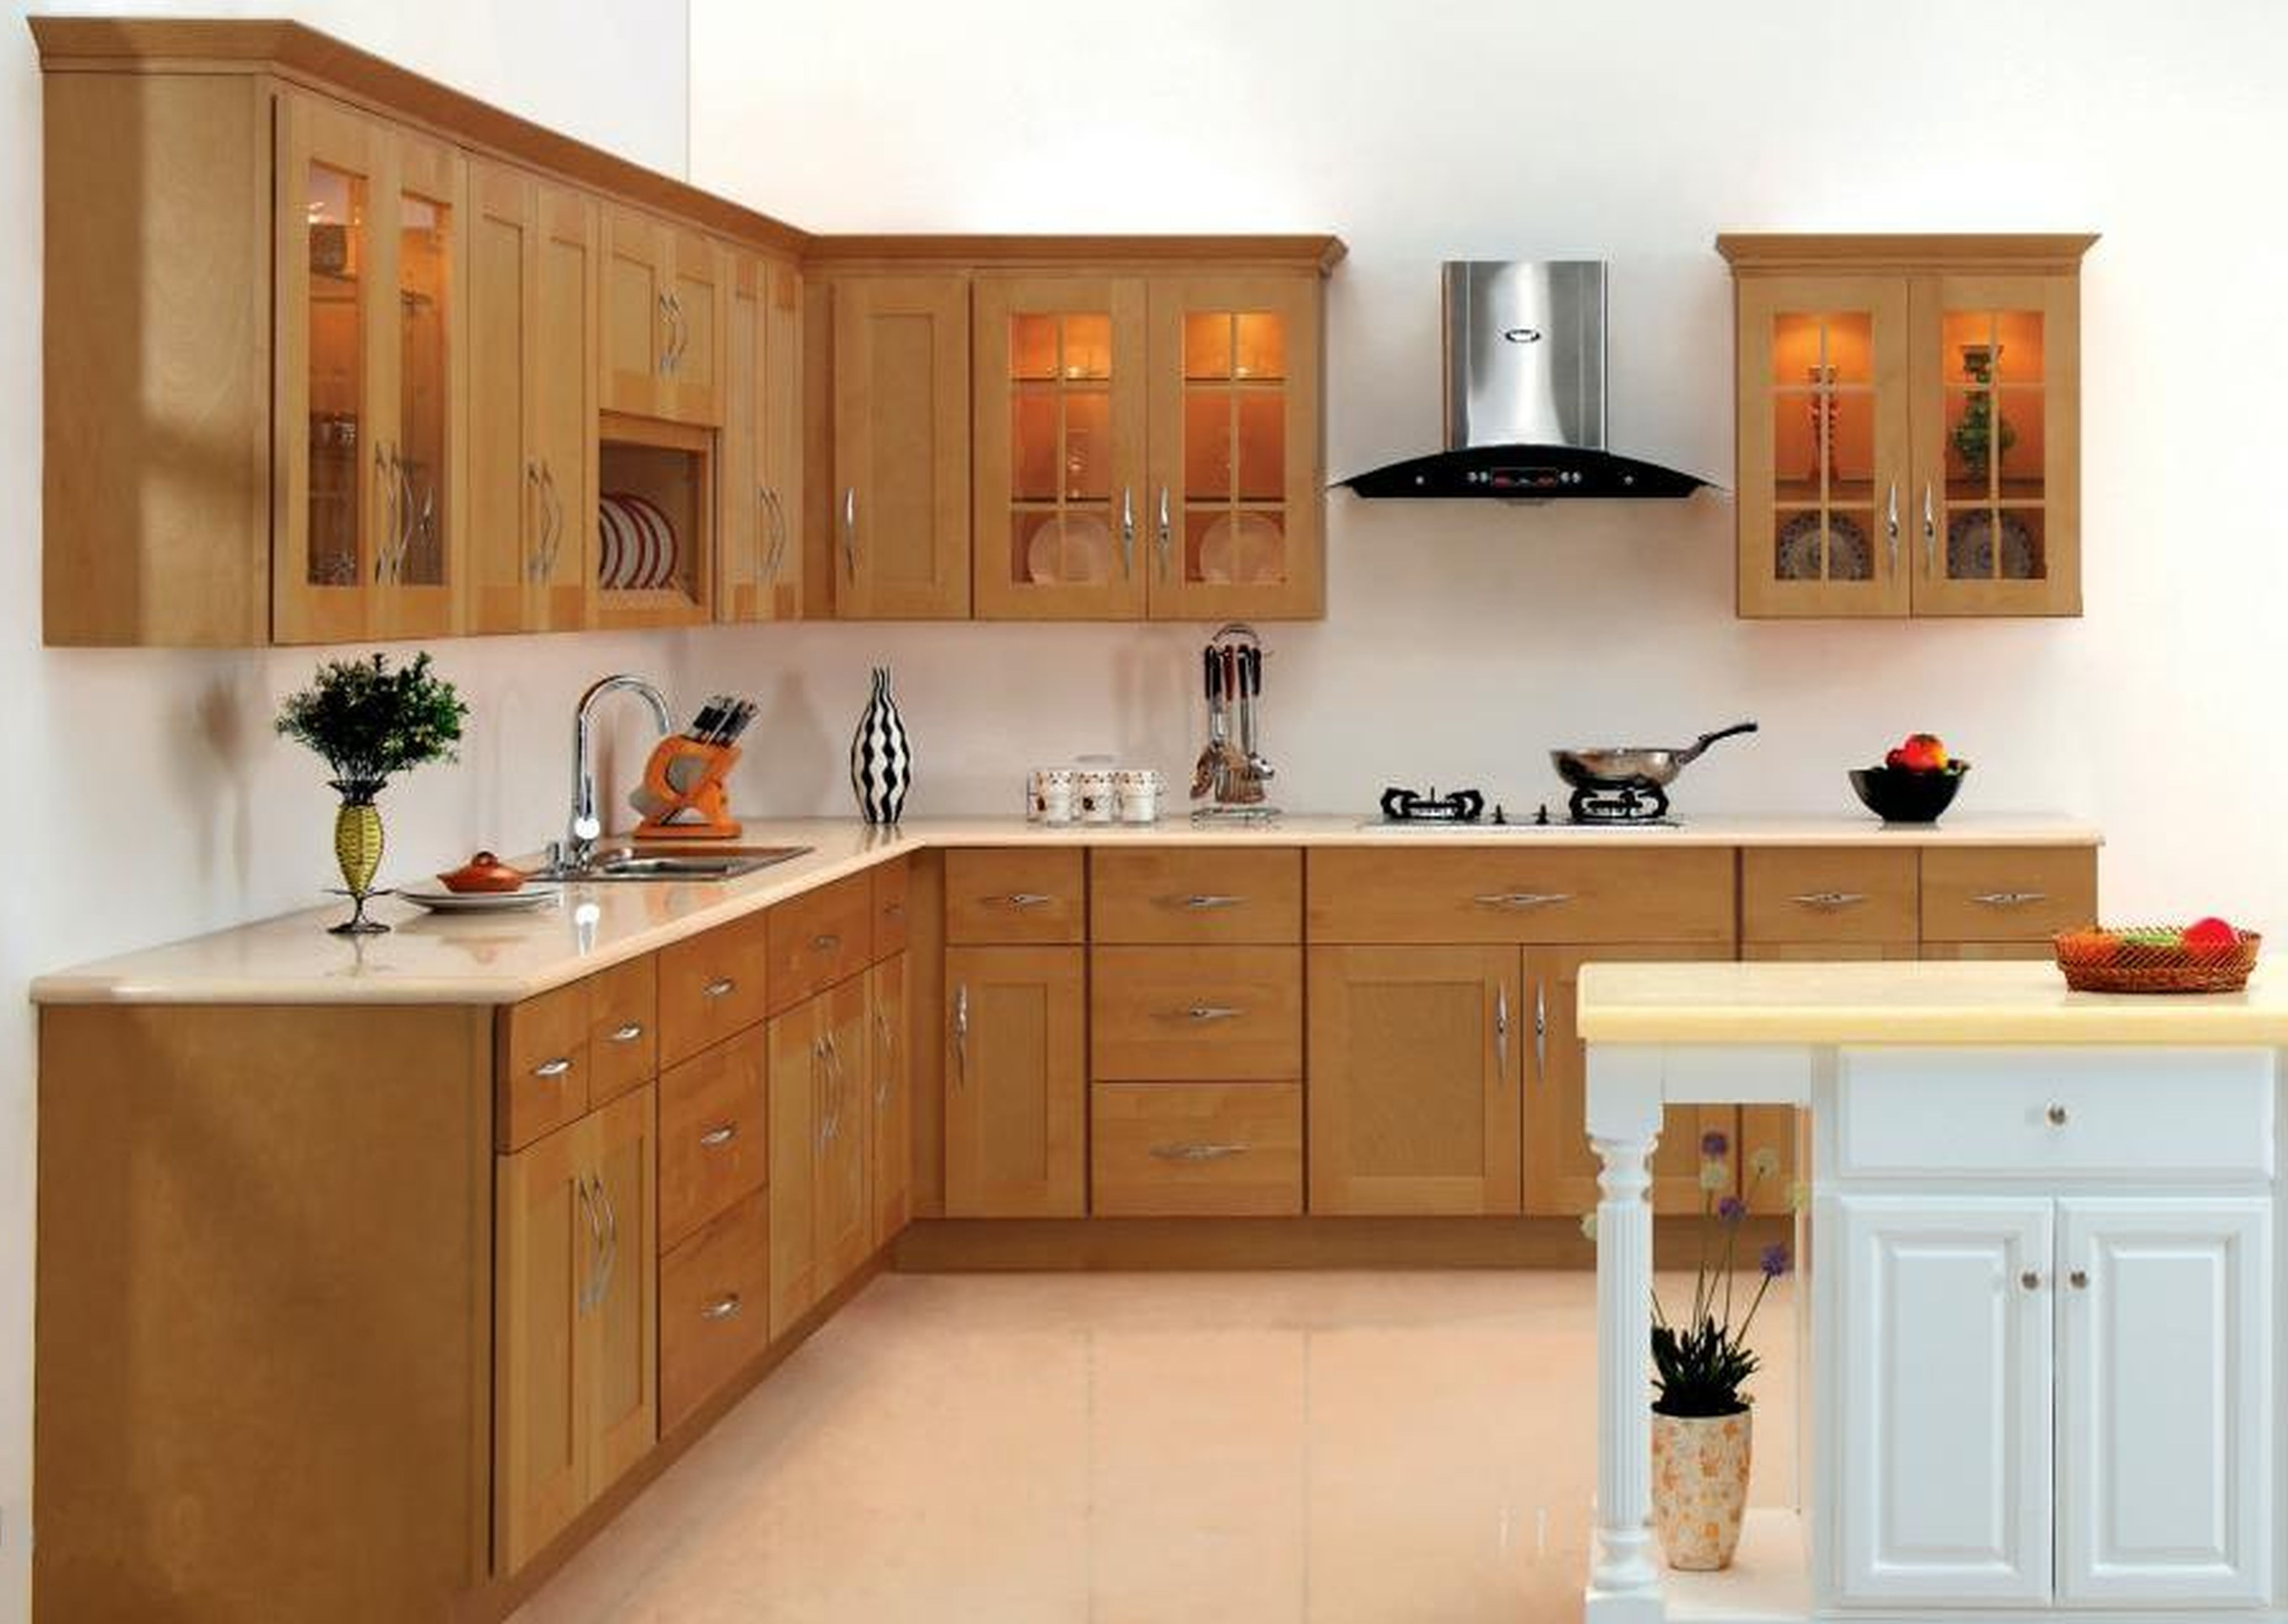 Kitchen Renovation Simple Traditional Kitchen Design With